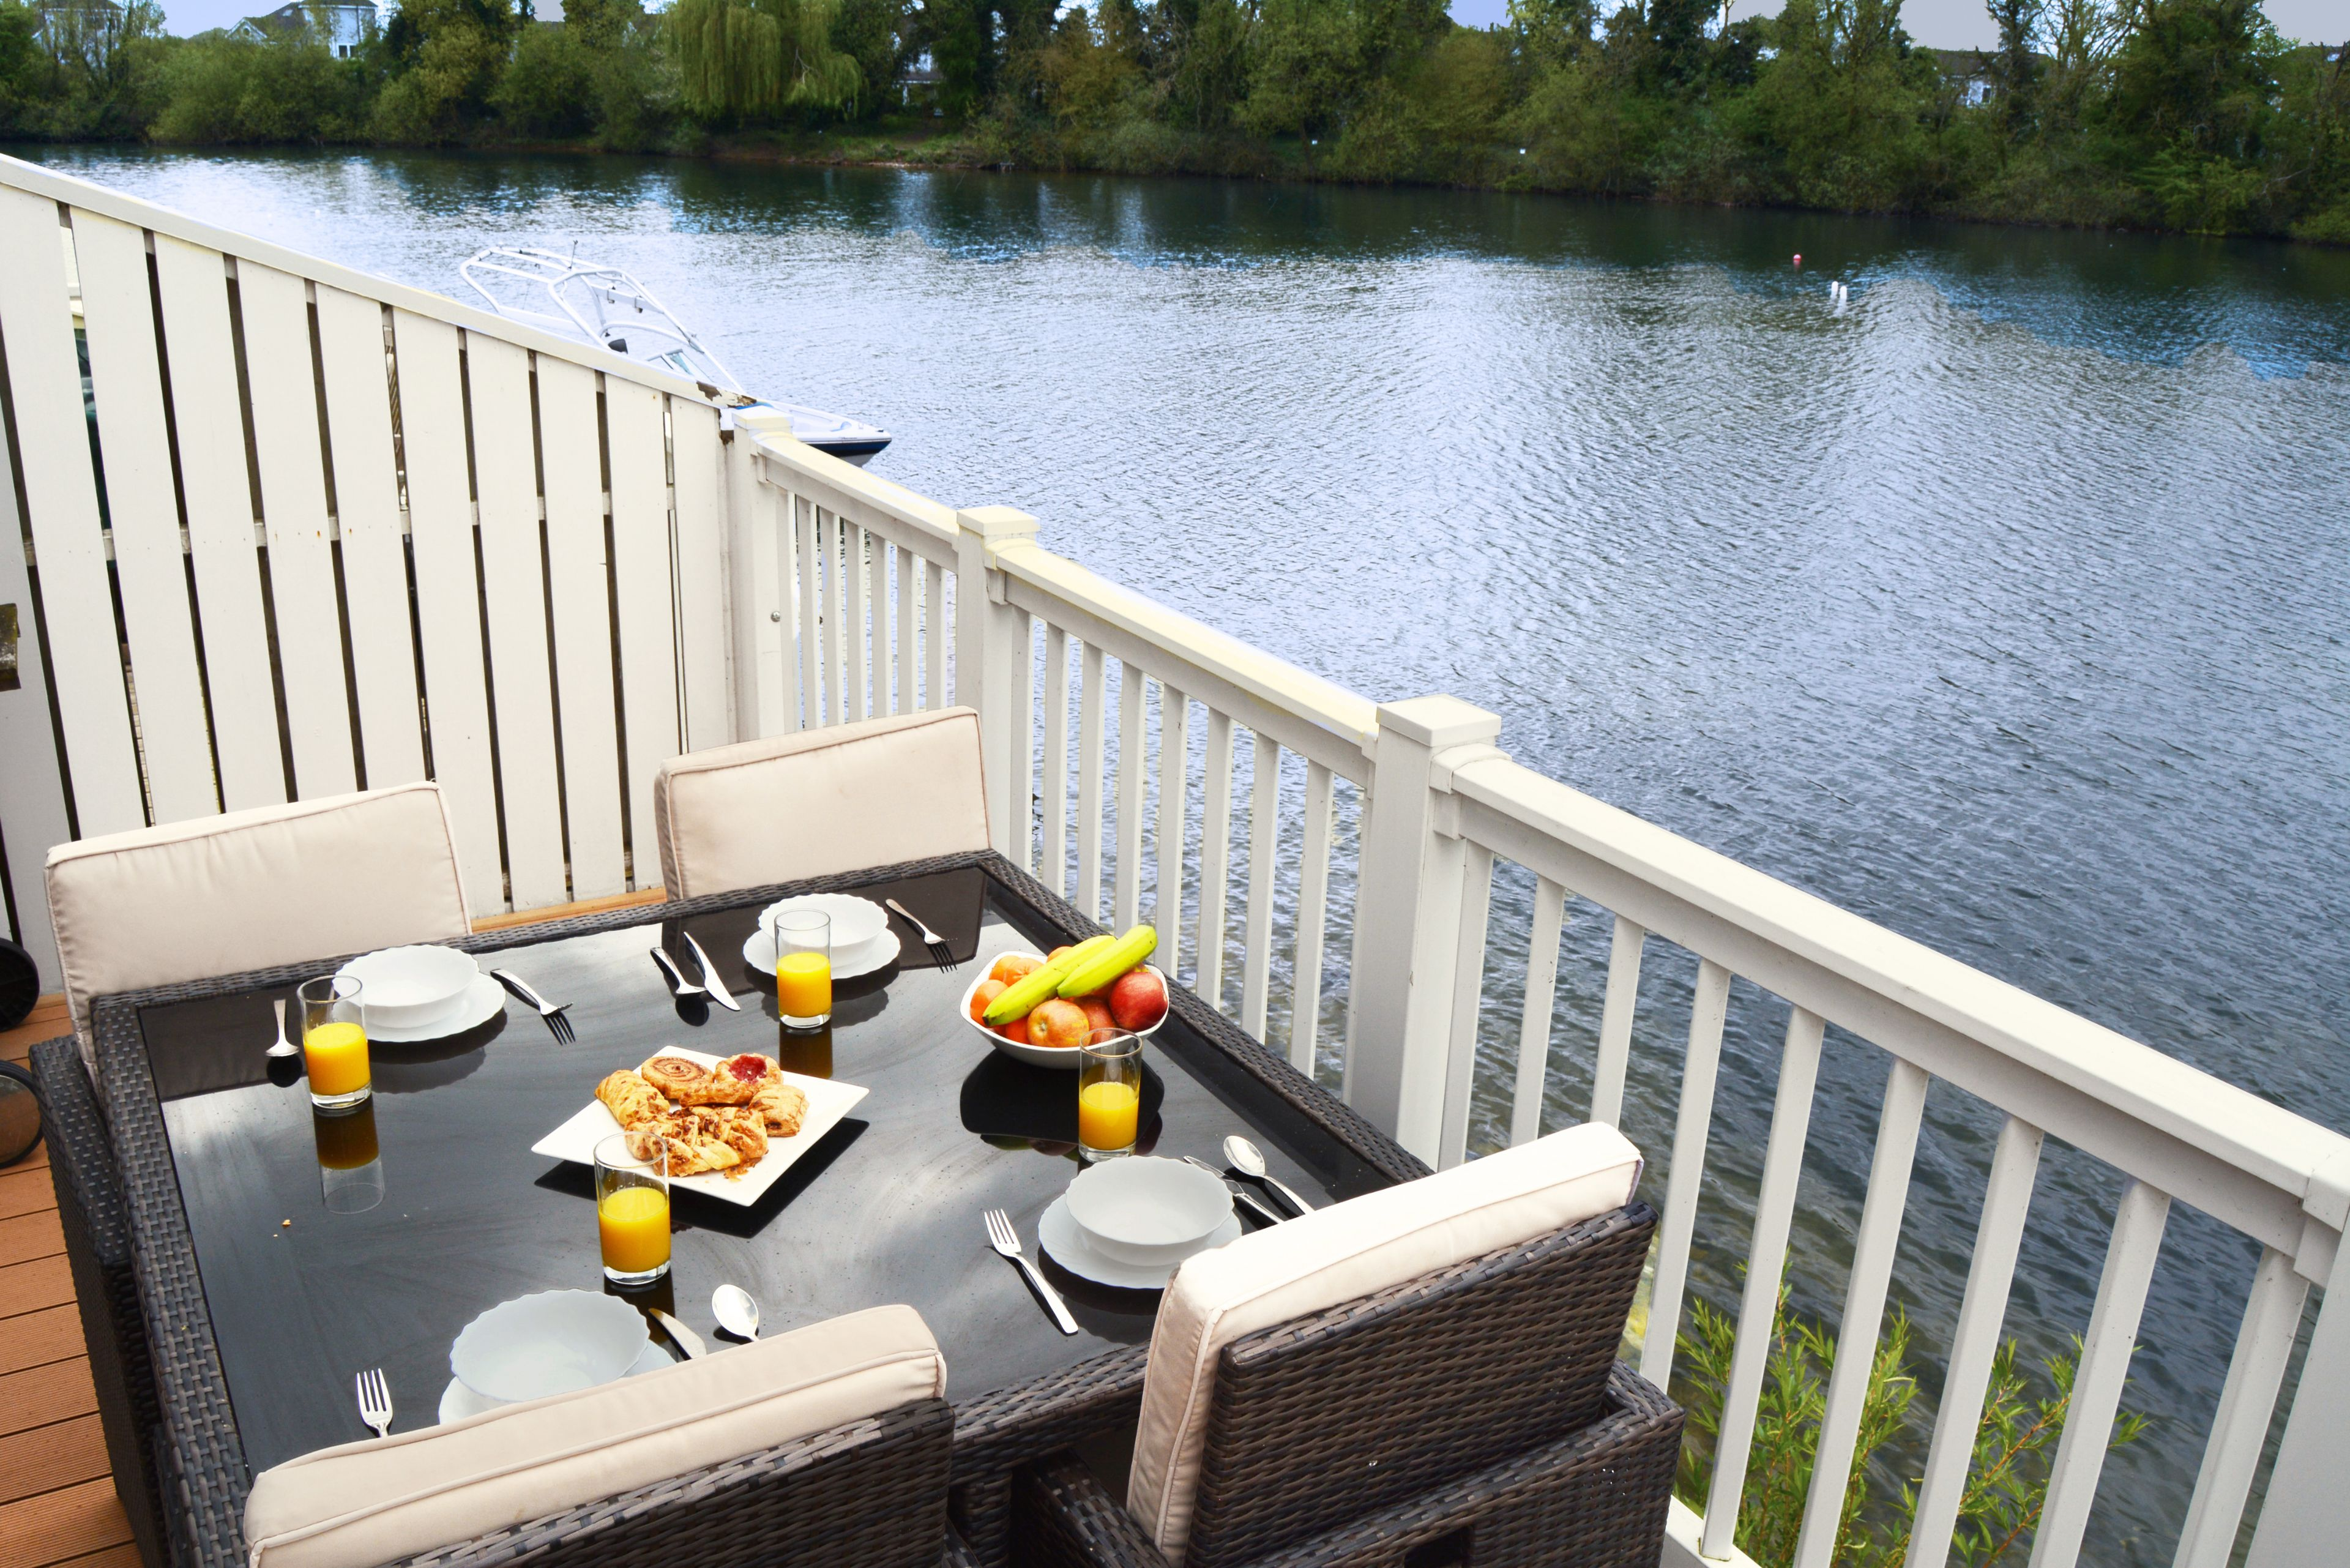 Simply sit back to enjoy lakeside life and watch the world go by